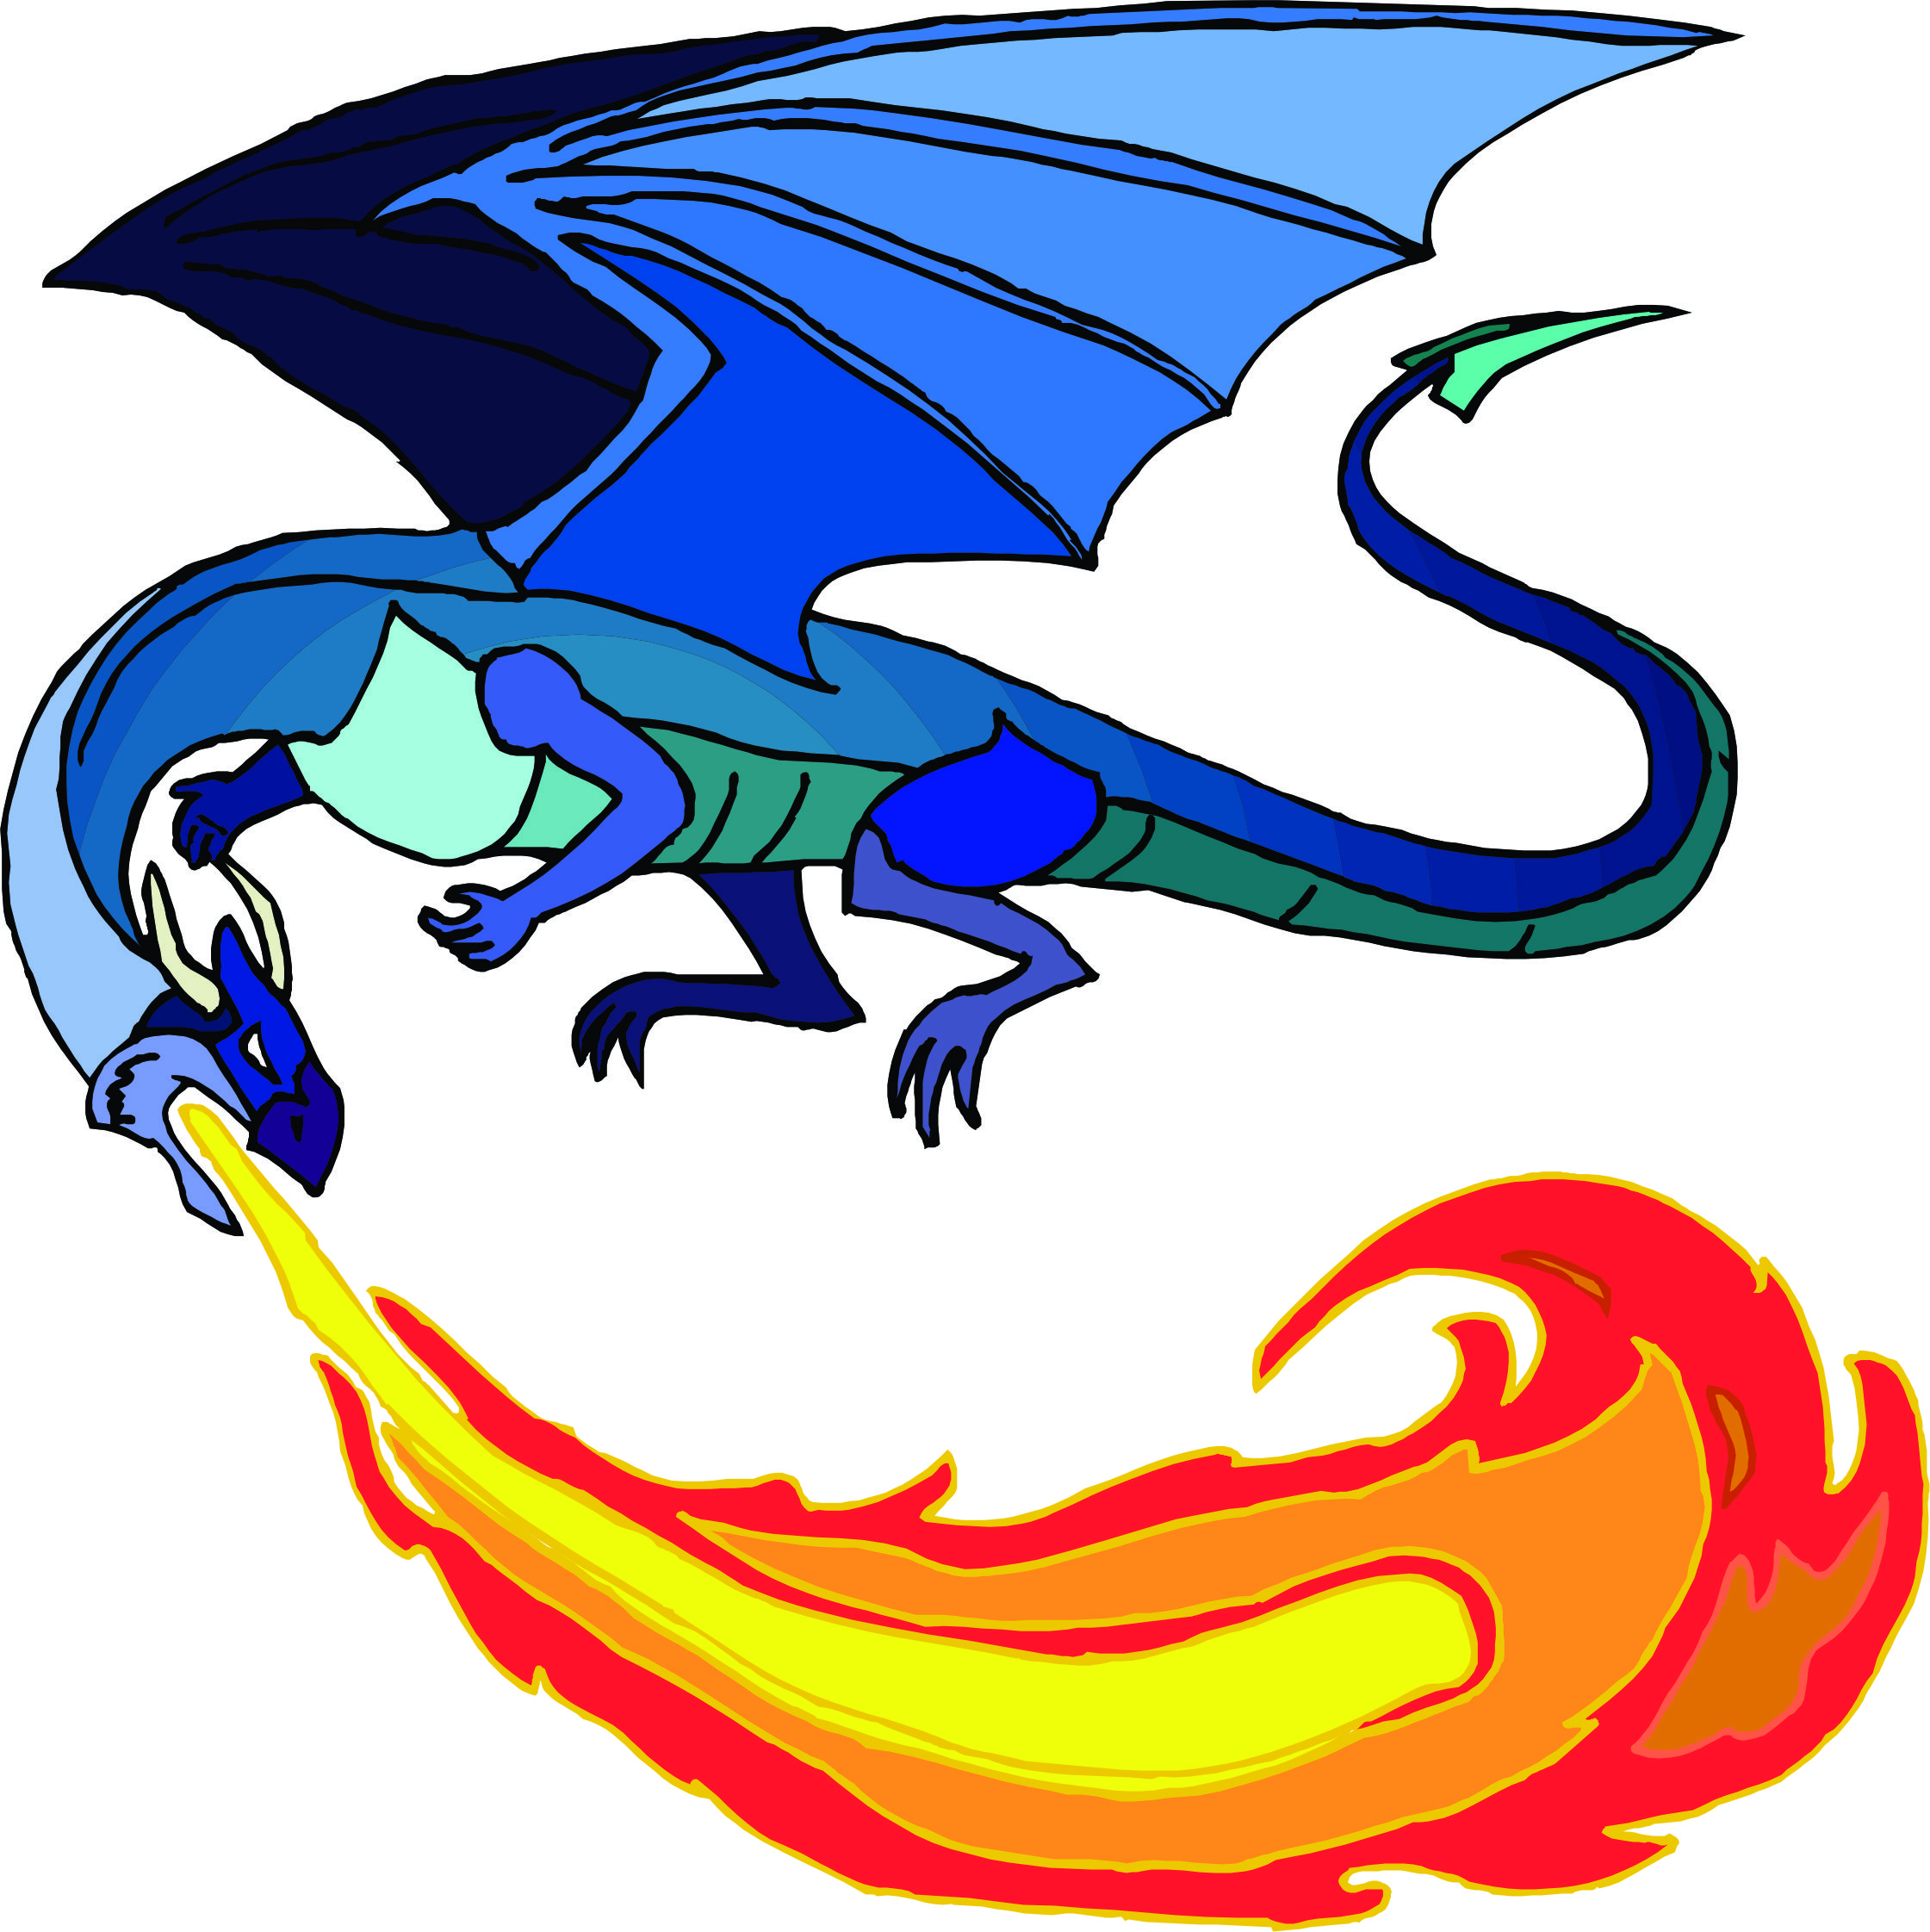 2241x2243 Dragon clip art images free clipart 4